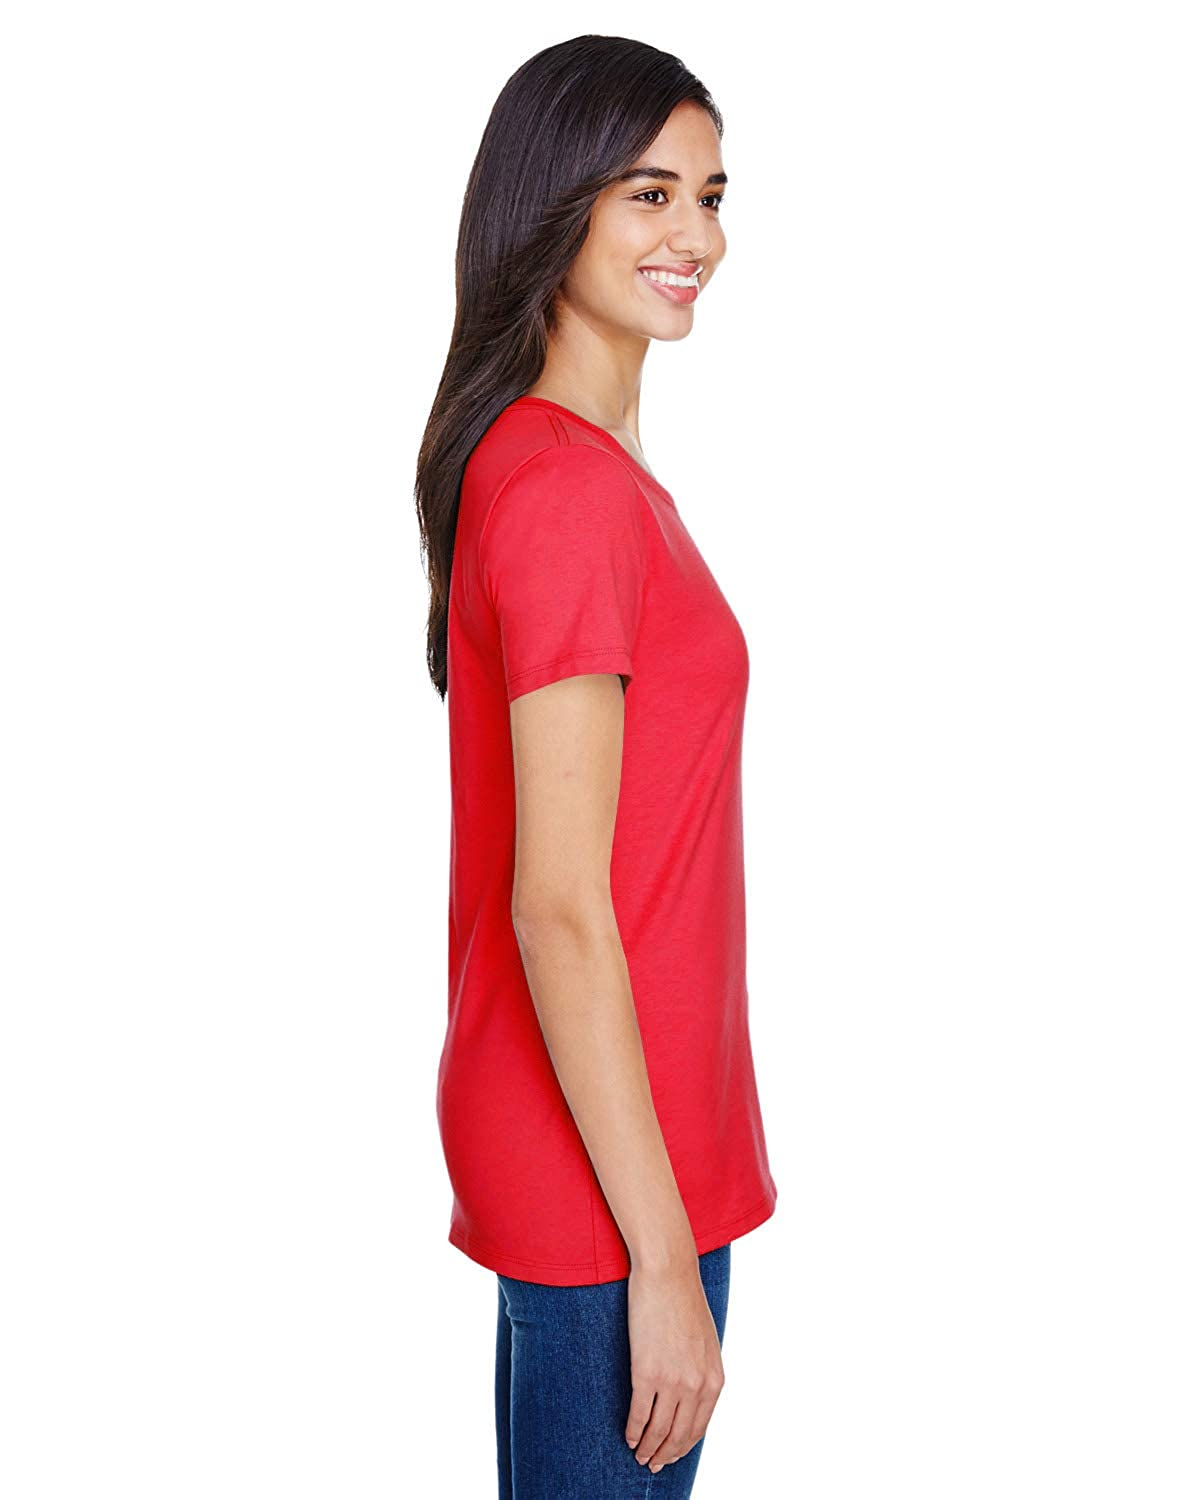 fd09fc25bd77 Champion - Women's Short Sleeve T-Shirt - CP20 at Amazon Women's Clothing  store: